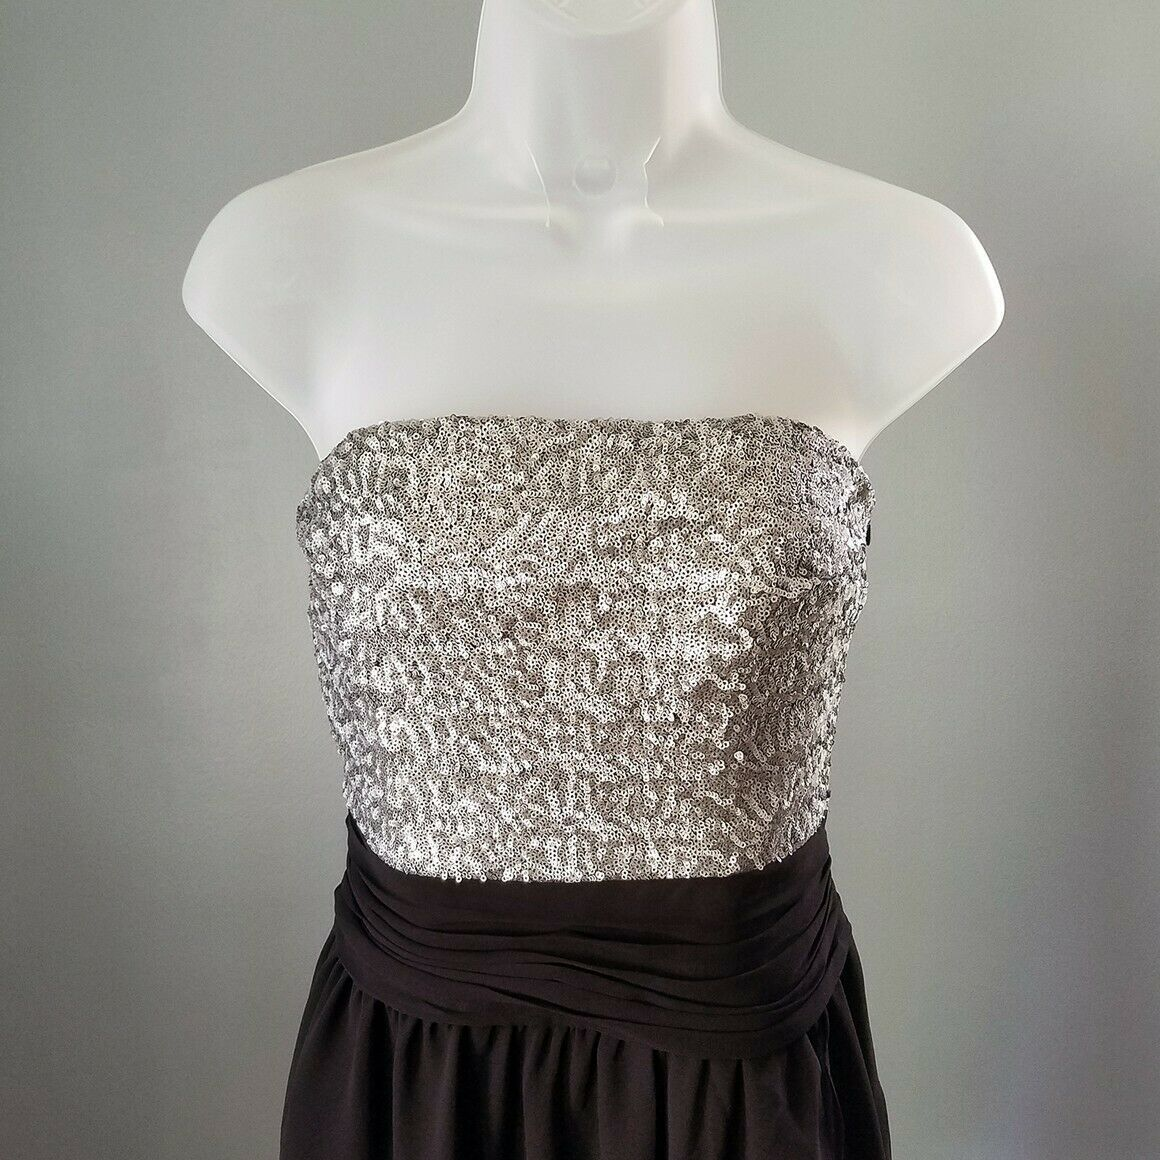 Express Silver & Black Sequin Strapless Cocktail Dress Size 6 image 2